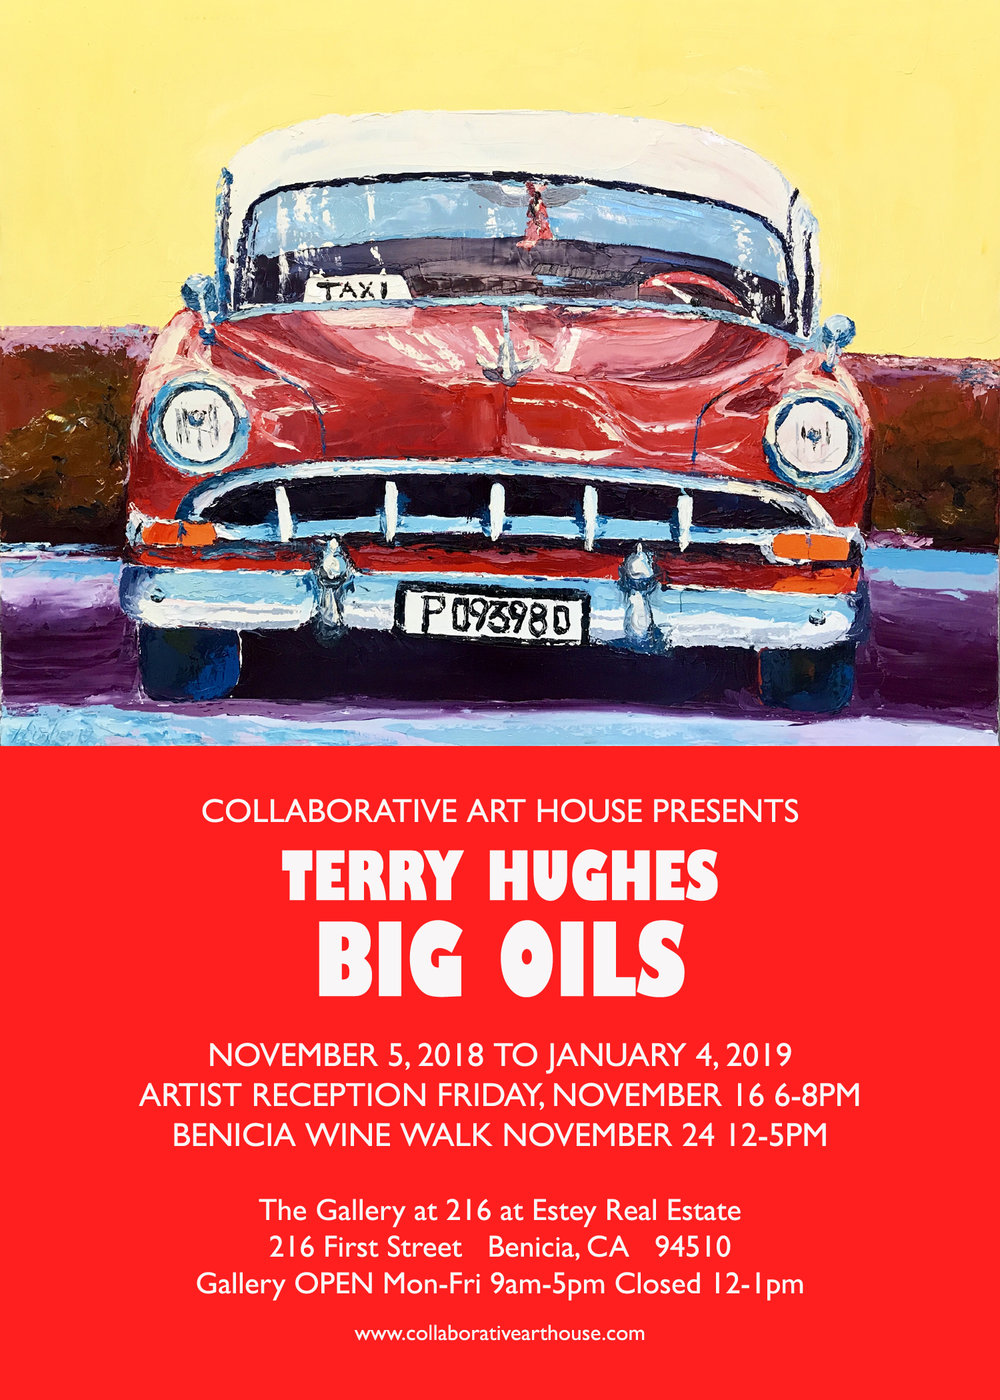 """""""BIG OILS"""" FEATURING NEW WORKS BY TERRY HUGHES SHOW RUNS NOVEMBER 5, 2018 TO JANUARY 4, 2019"""